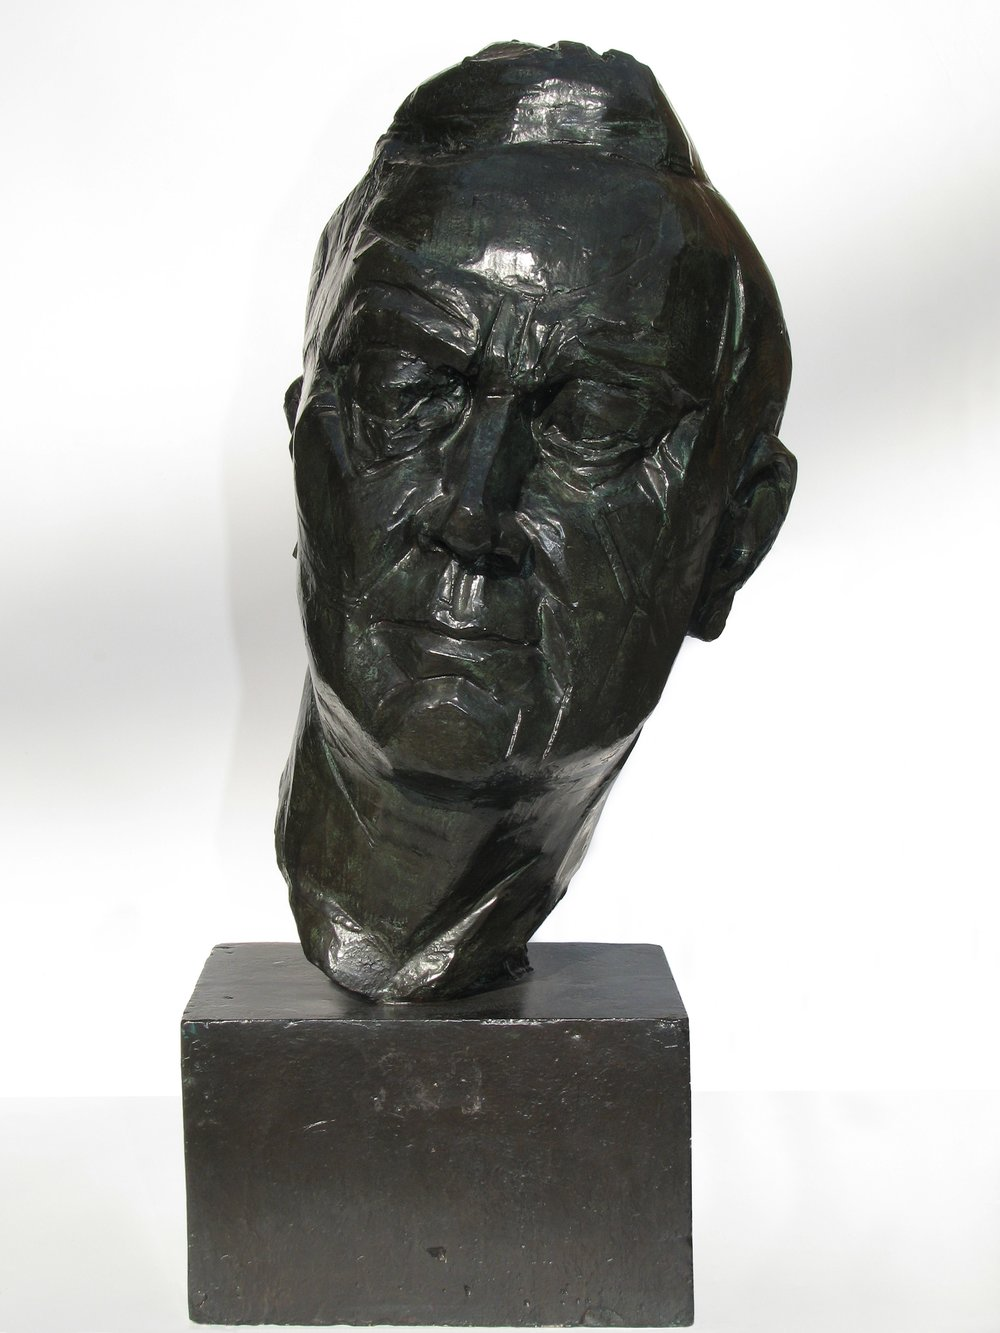 "Portrait Head of President    Franklin   Roosevelt  1934, bronze 26 x 12 ¾ x 13 ¾"" National Portrait Gallery, Smithsonian Institution, Washington, DC 30.396"